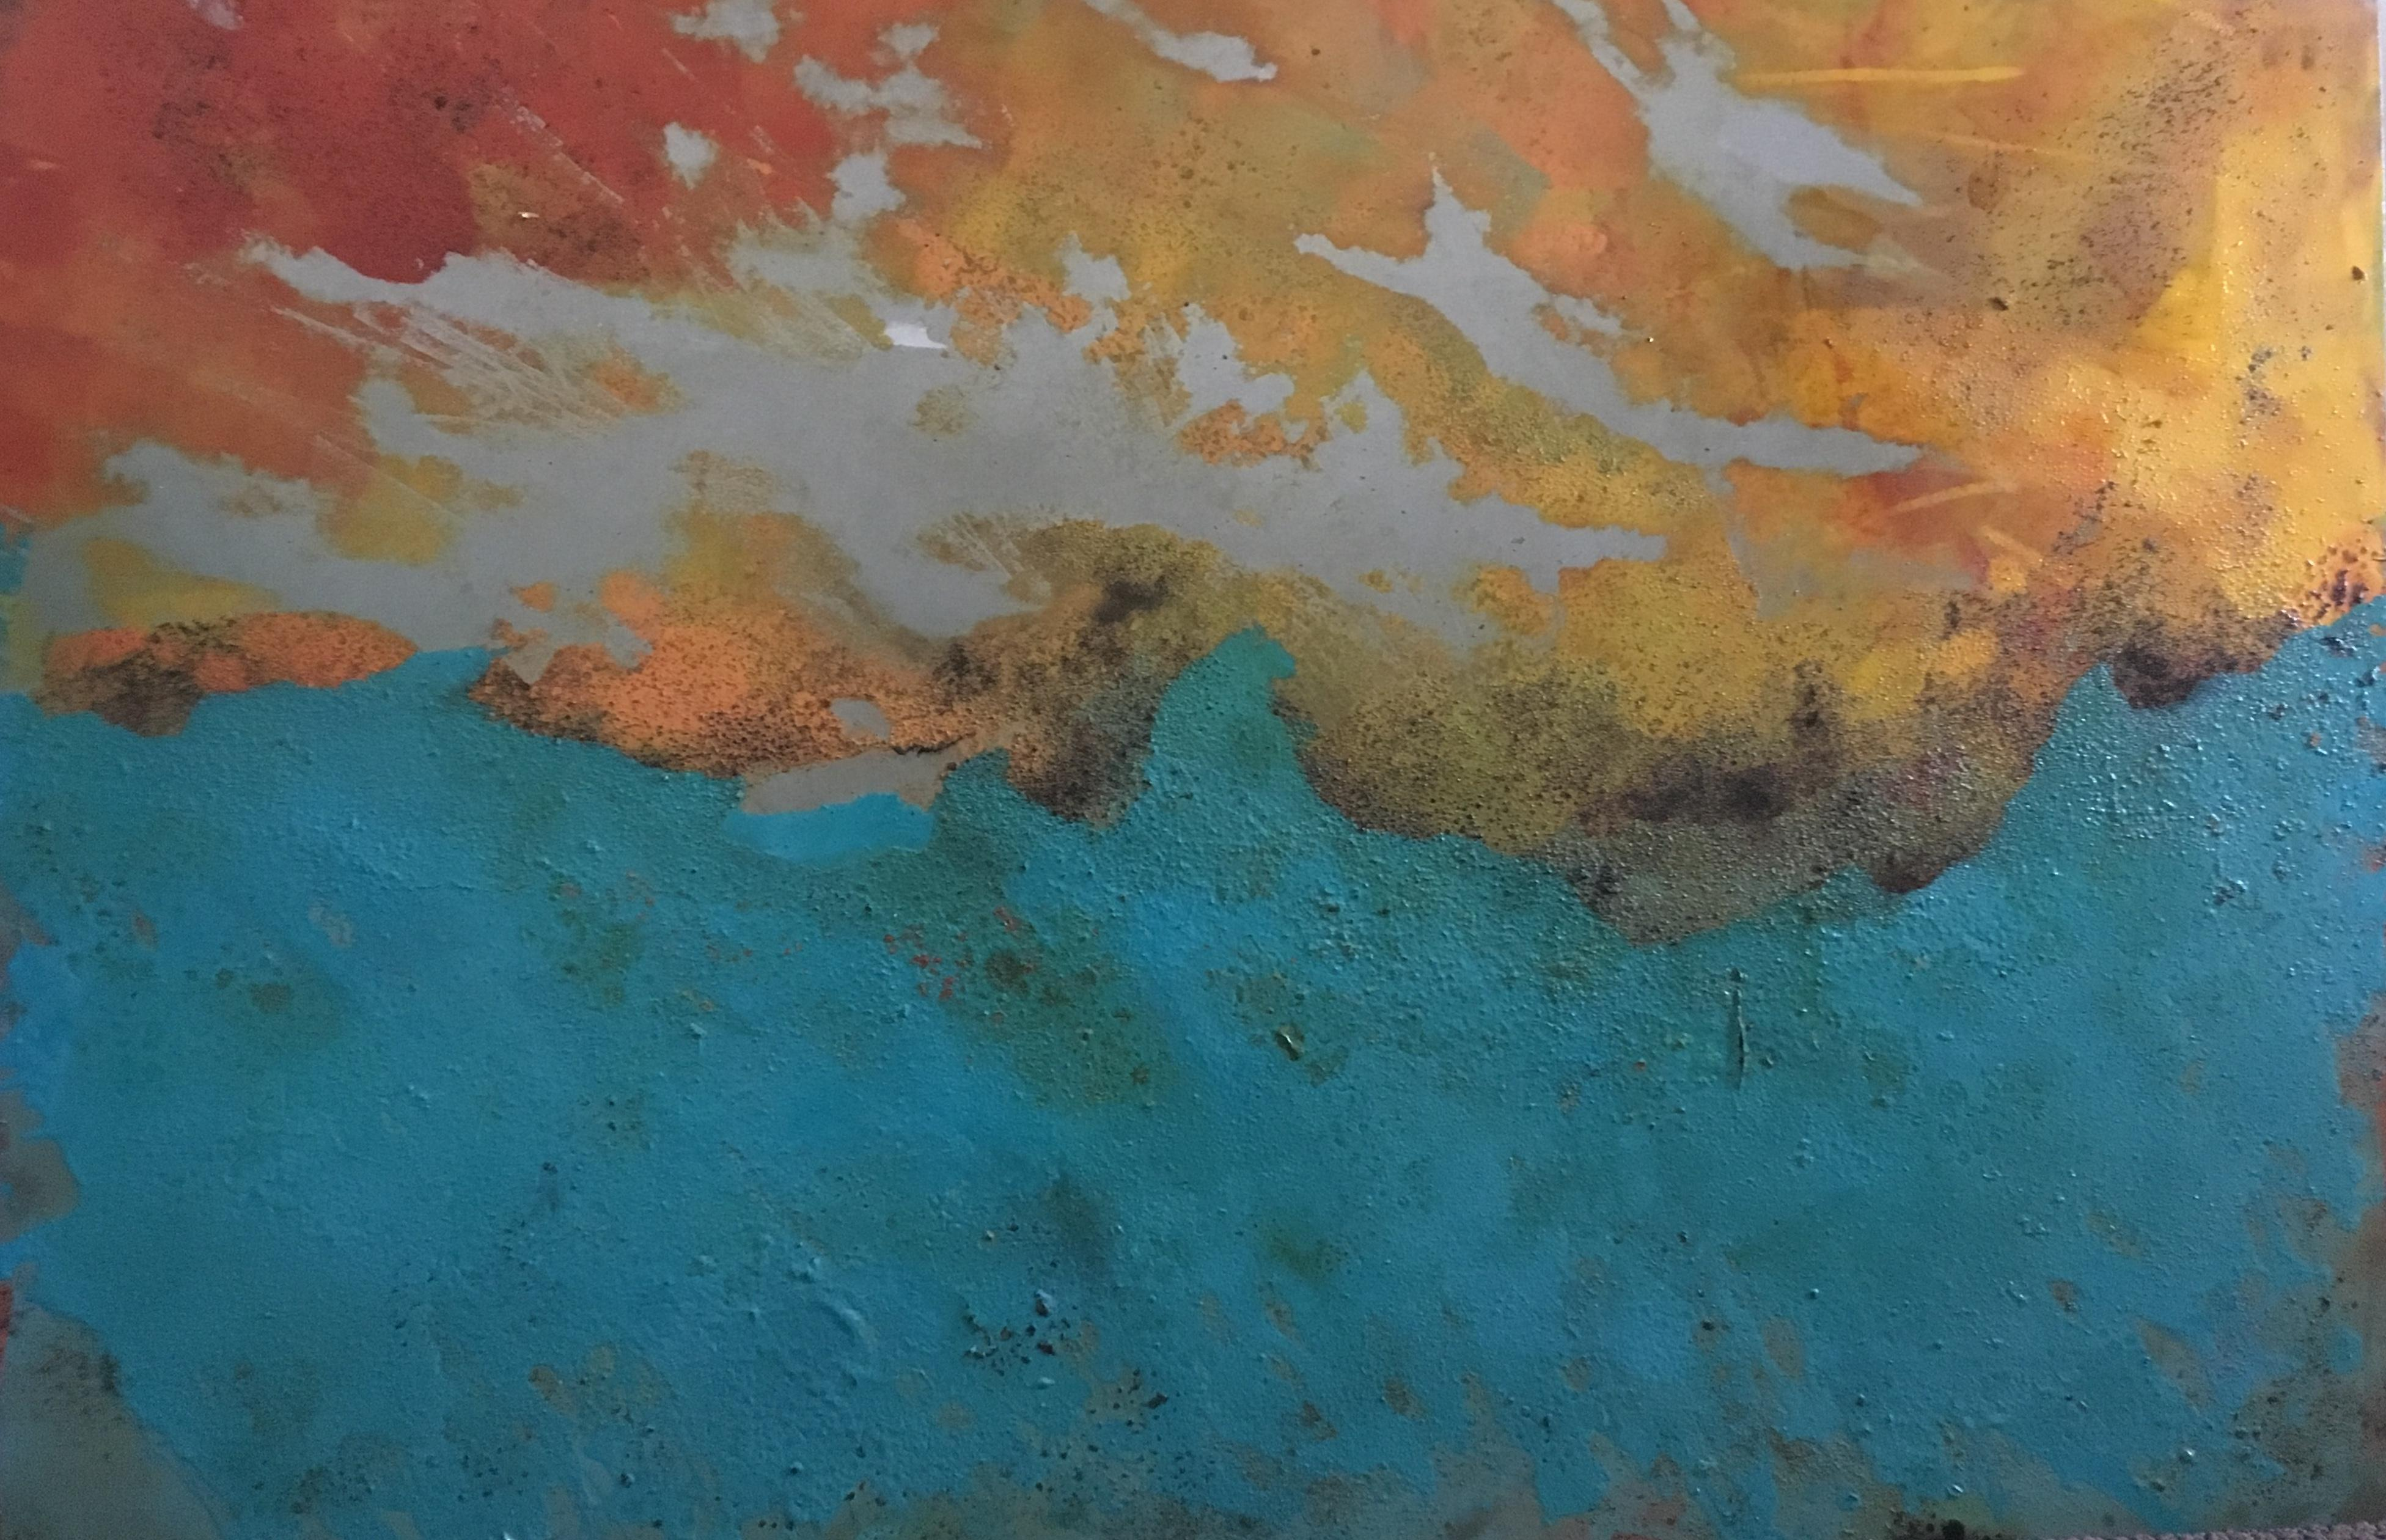 Westward - Oil, Coffee and Parafin on steel, abstract landscape painting